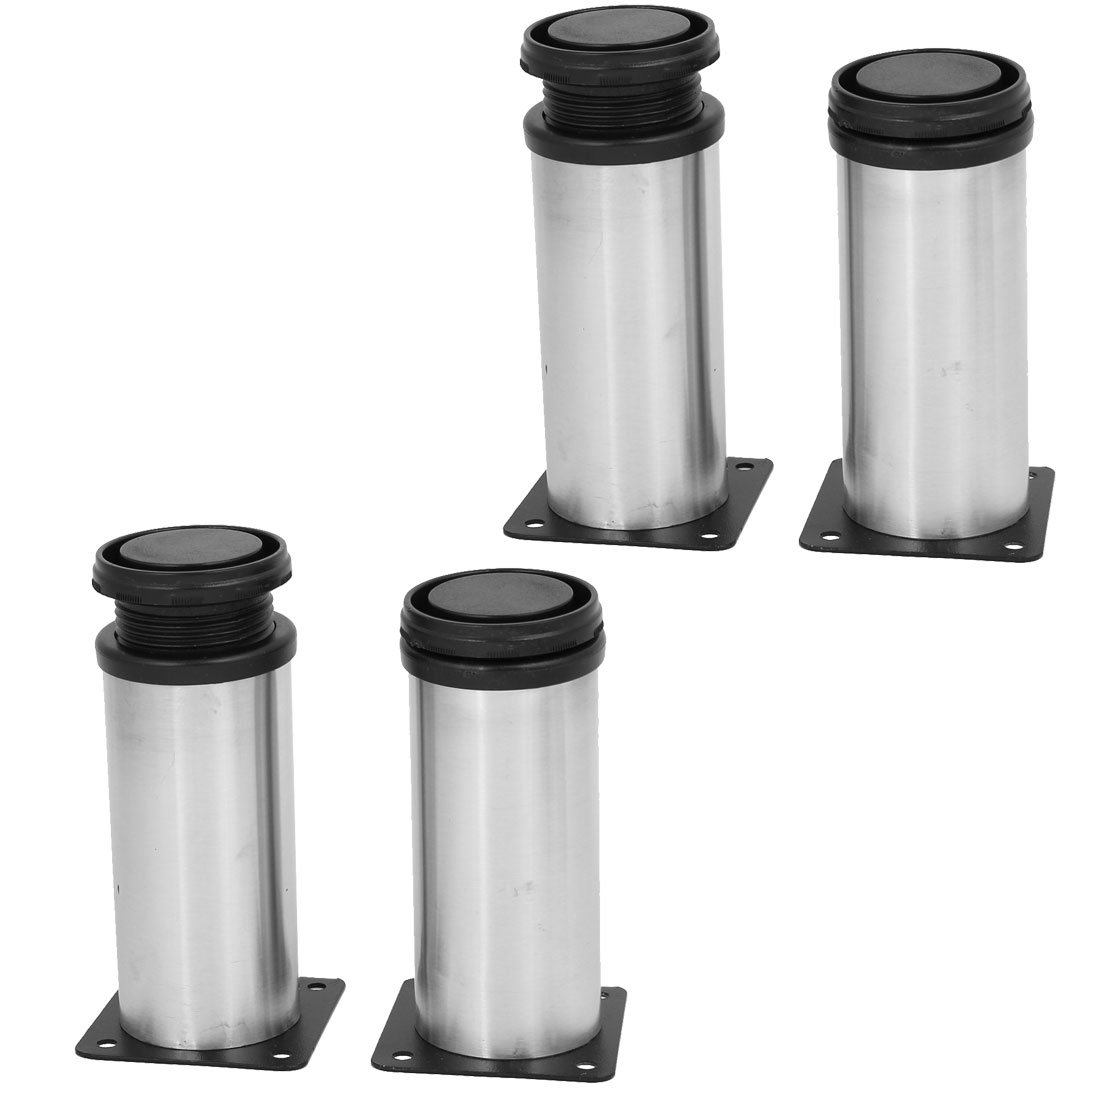 uxcell 50mm x 120mm Metal Adjustable Table Cabinet Feet Leg Round Stand 4PCS